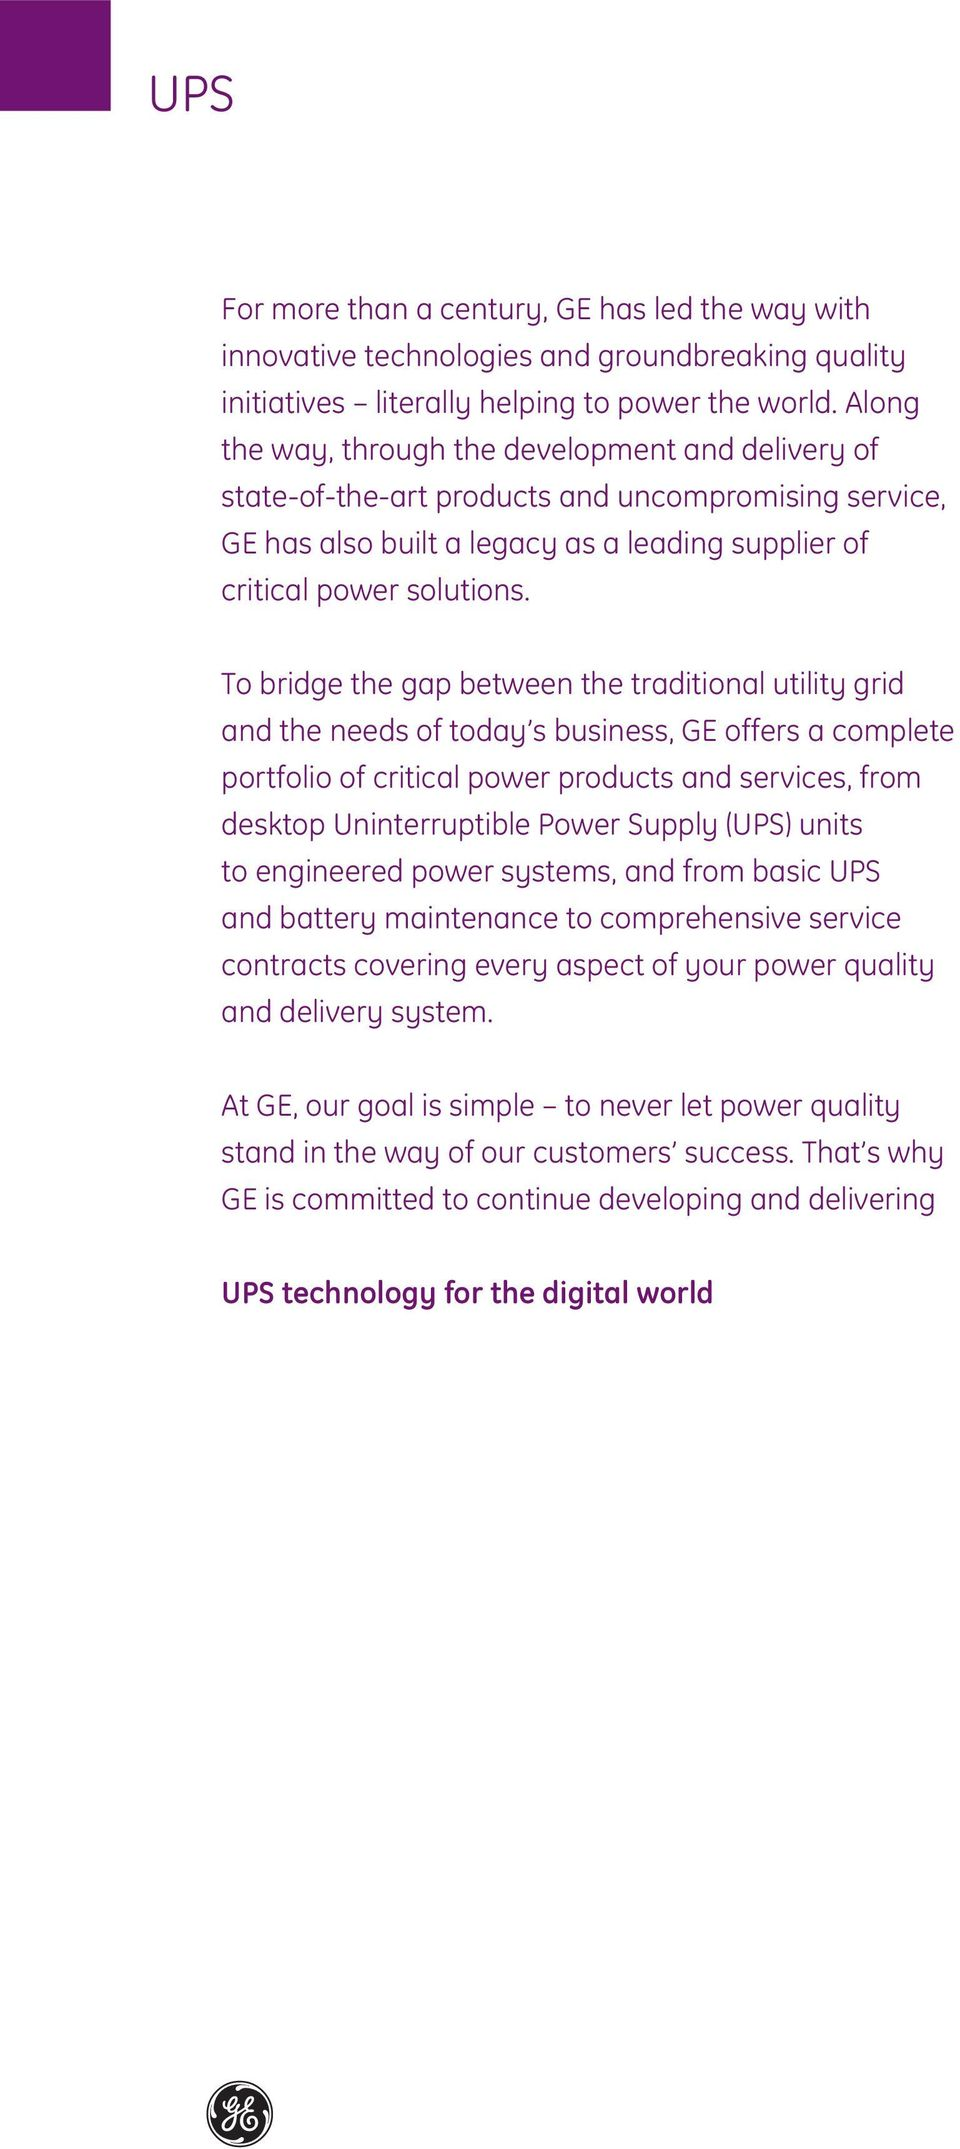 GE Consumer & Industrial Power Protection UPS